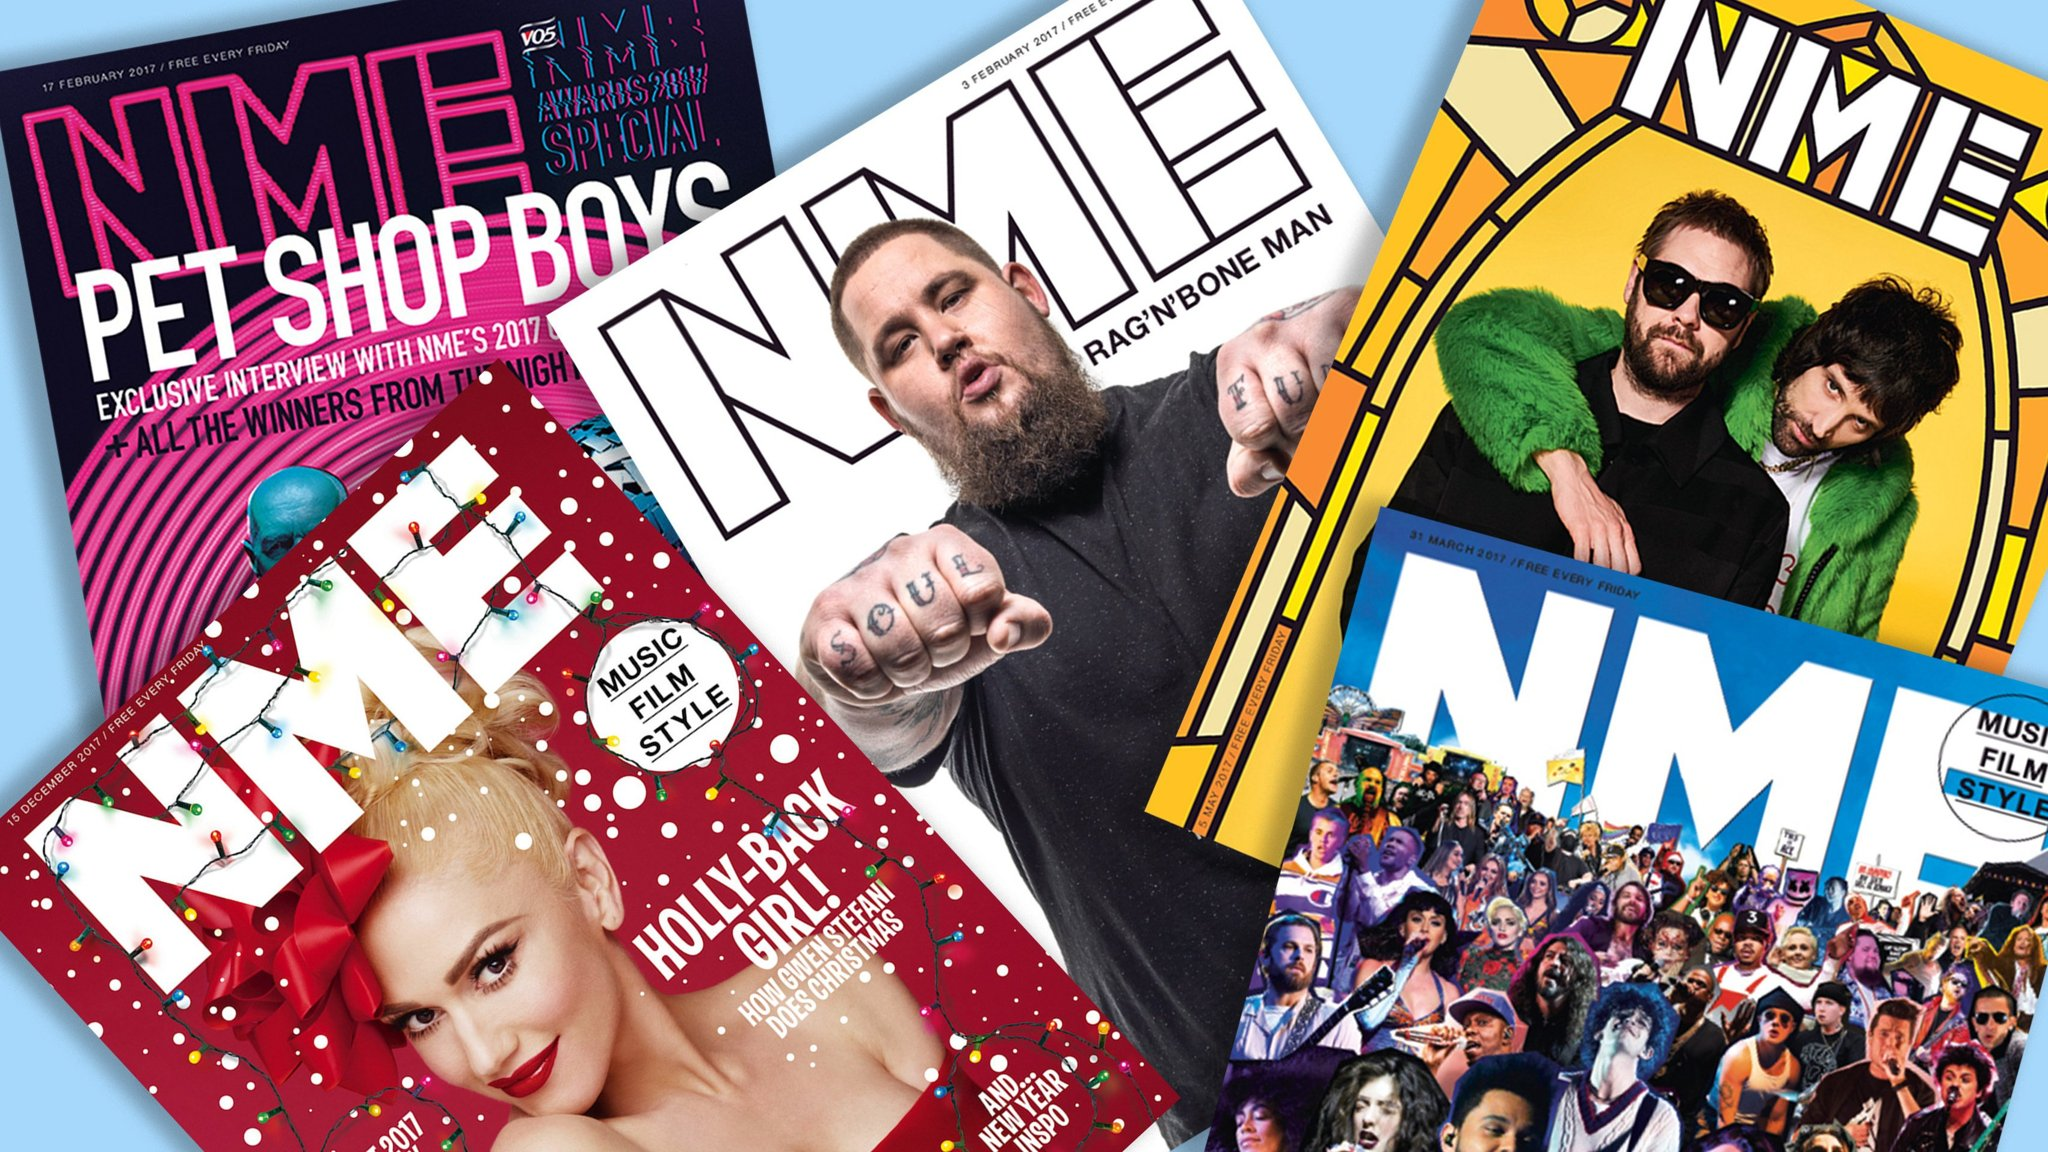 NME fades out after 66 years chronicling UK music | Financial Times